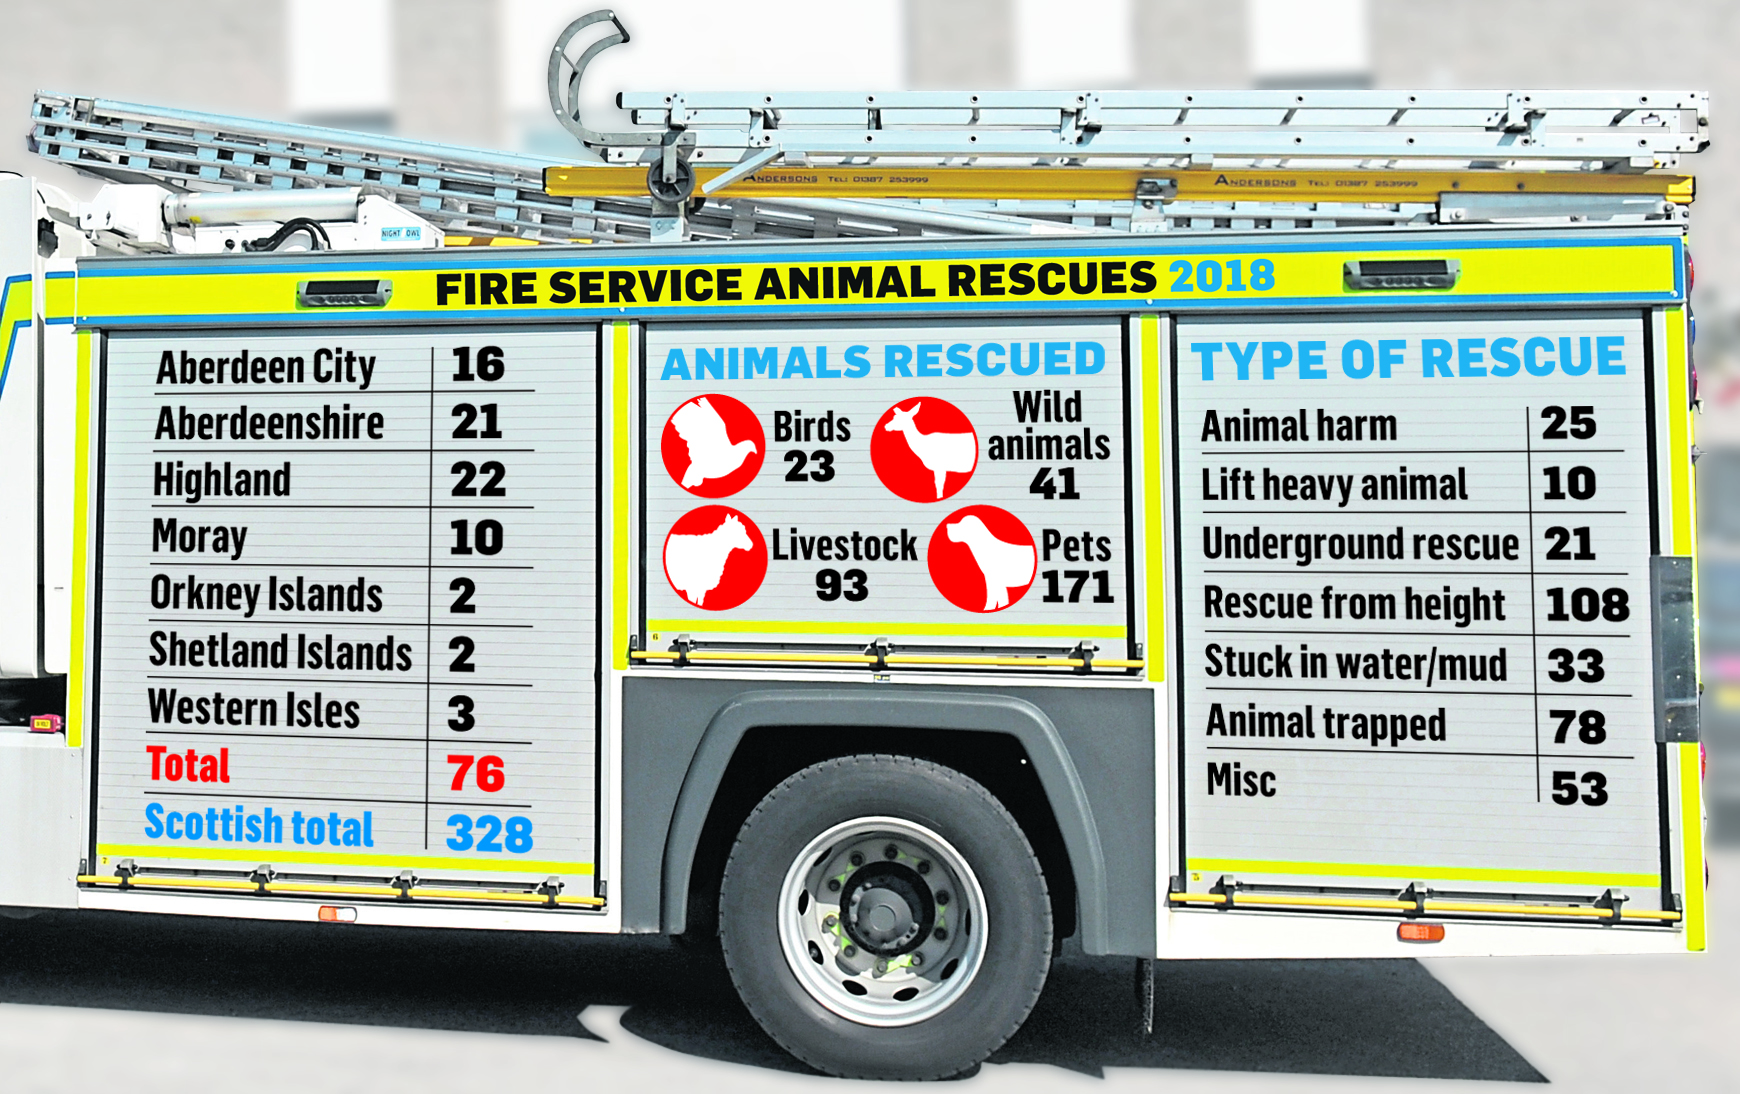 The fire service has been involved in a number of animal rescues